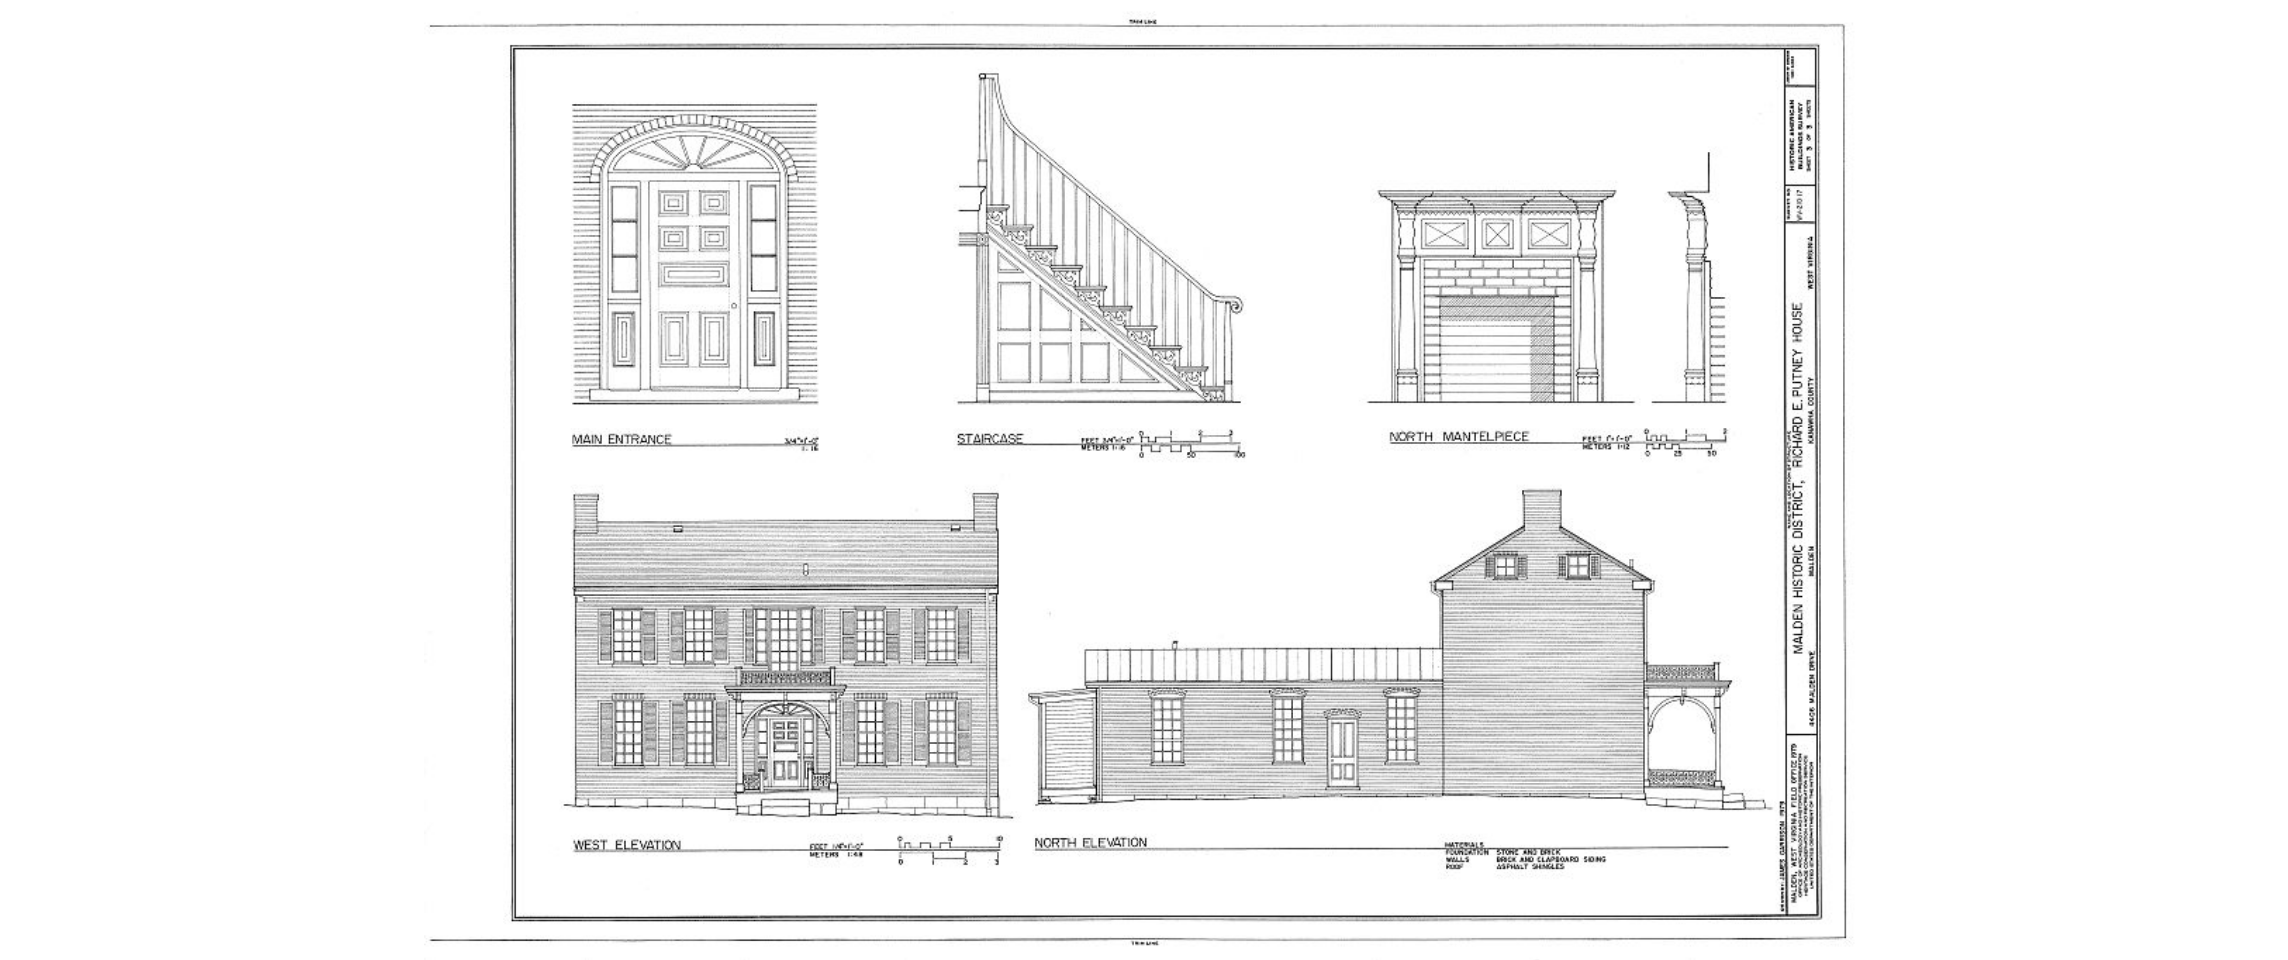 Architectural sketches of the Putney House, from the Historic American Buildings Survey